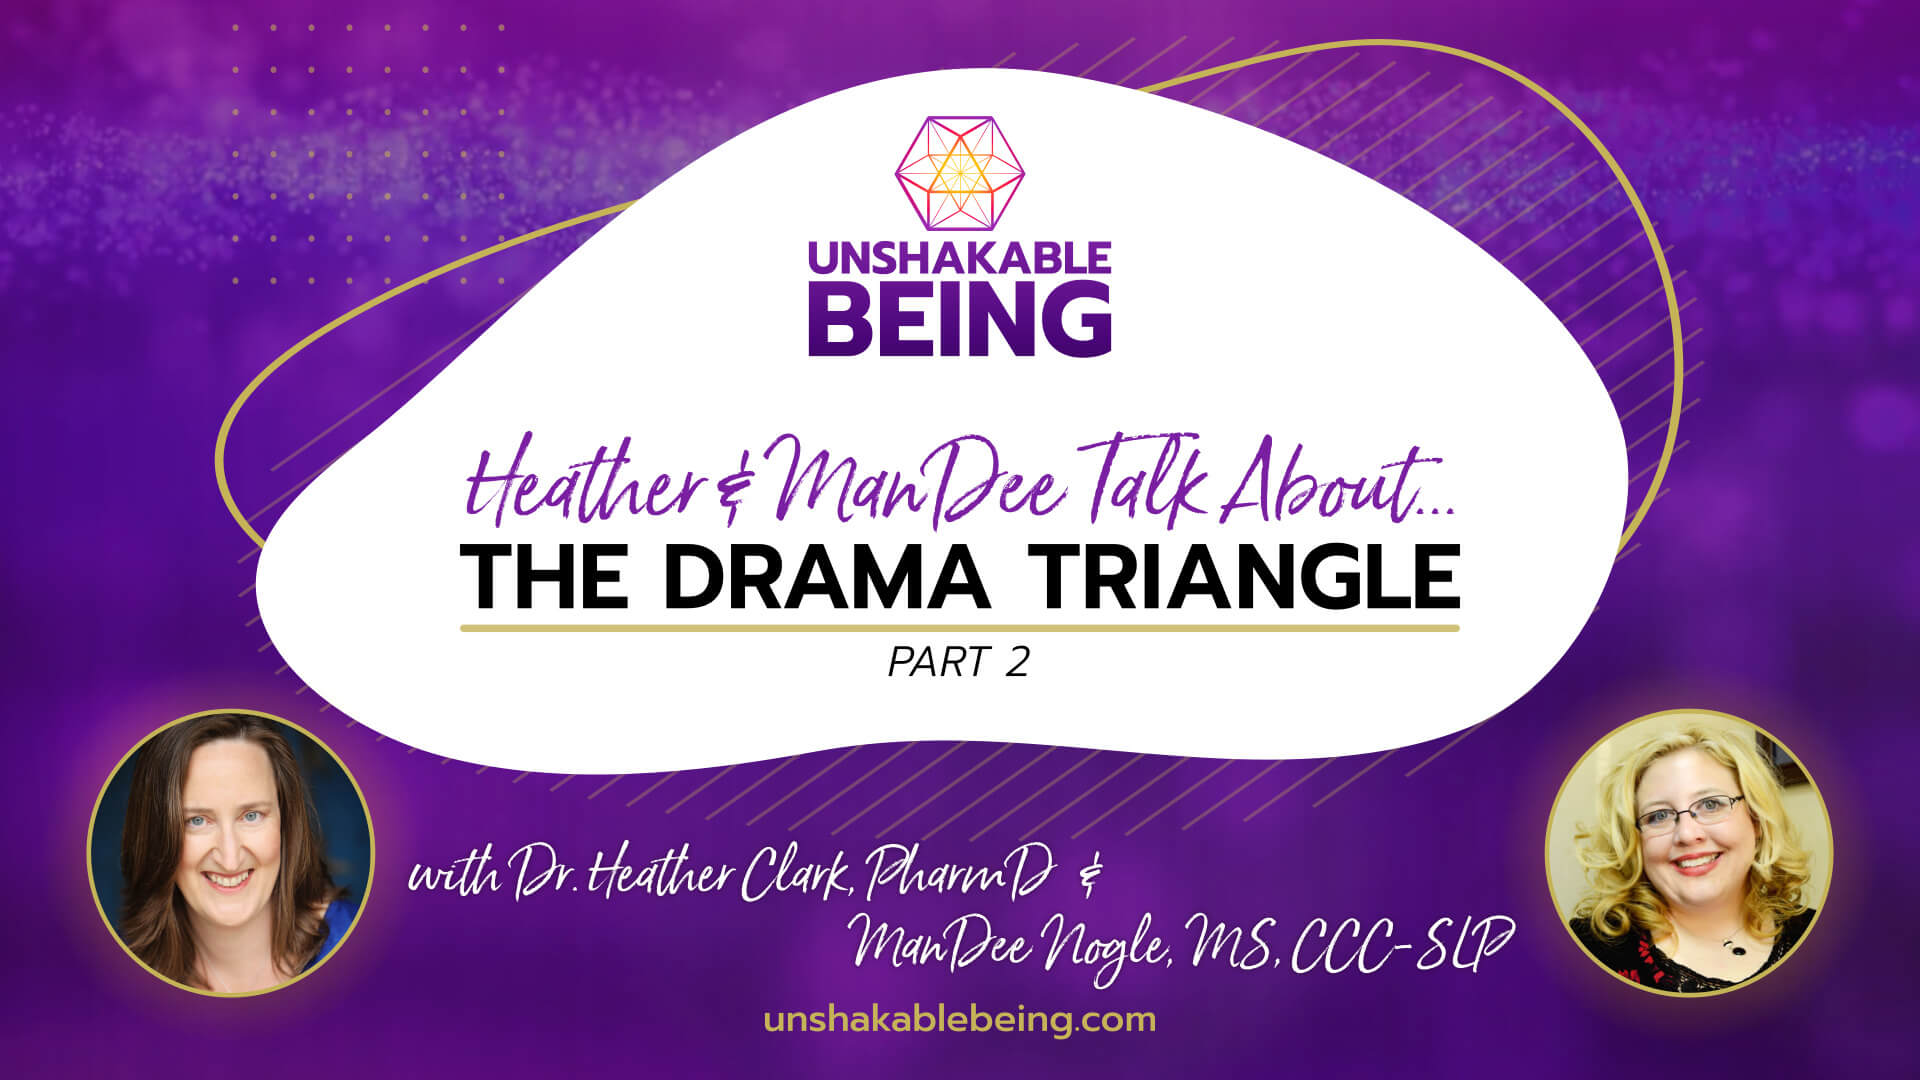 The Drama Triangle (Part 2) on Heather & ManDee Talk about…